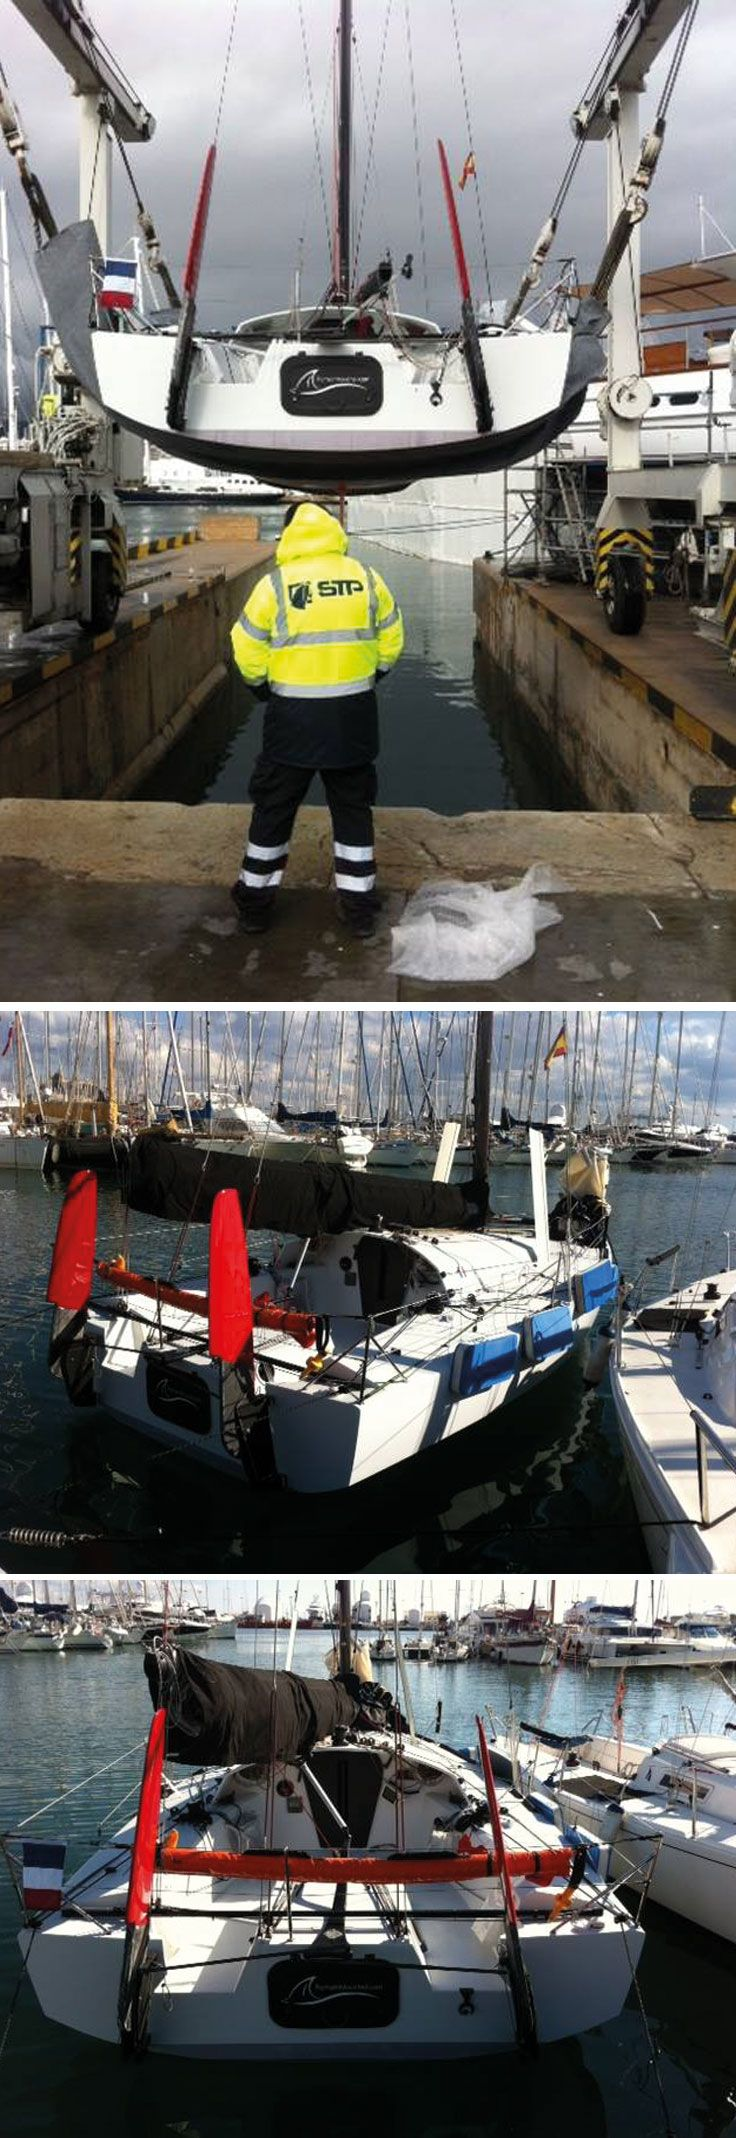 The Launch of the #MiniTransat 759 with @Rmouchel_346 was a great success last #Friday - followed by a successful sail that afternoon to test the new #rig and boat. Photo Credit to: Romain Mouchel www.technocraftsl.com #marinescaffold #yachtcover